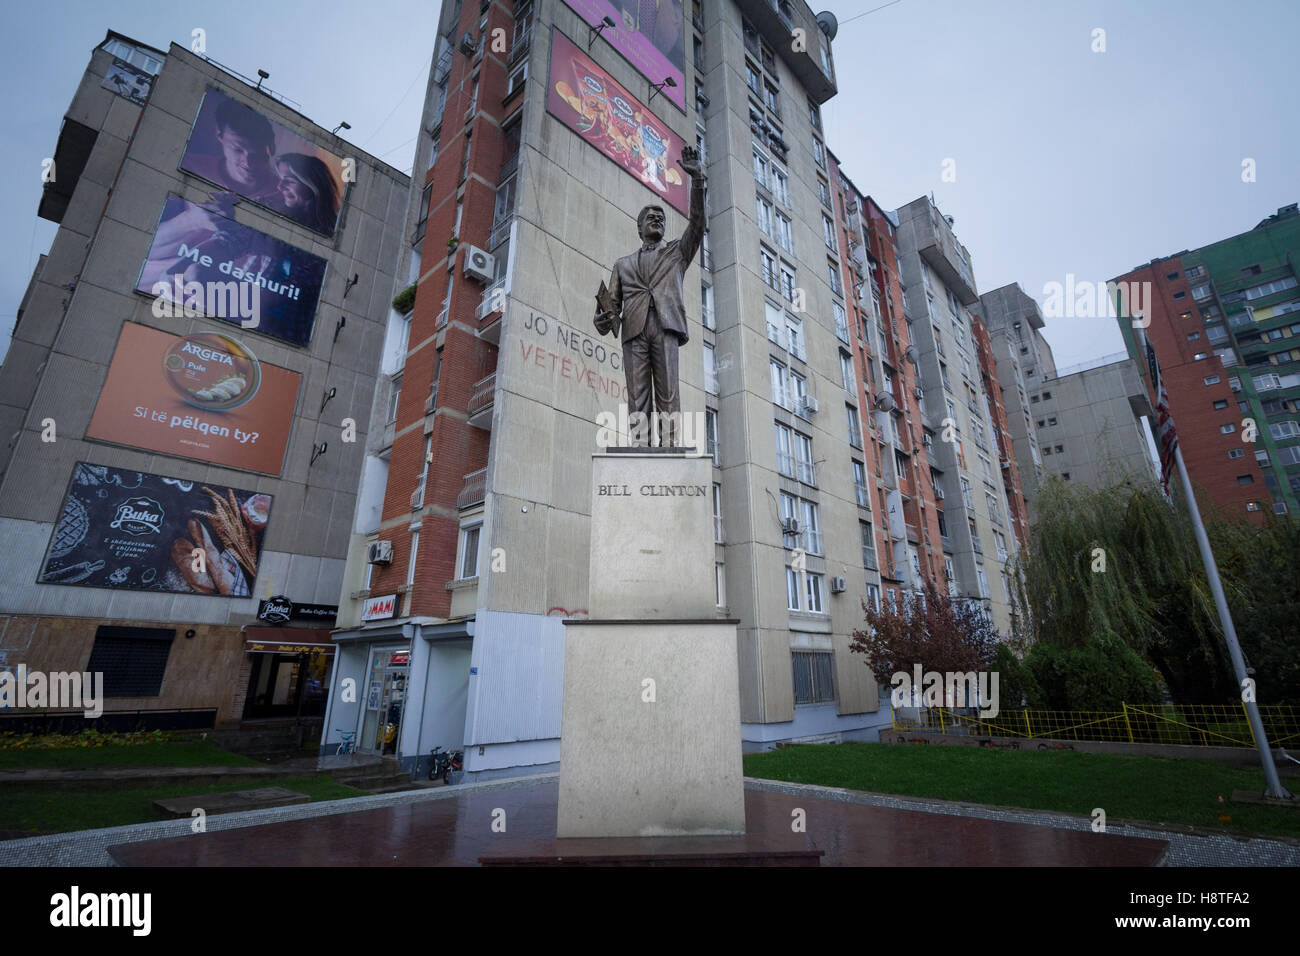 Bill Clinton statue on Bill Clinton Boulevard in Kosovo capital city of Pristina. - Stock Image